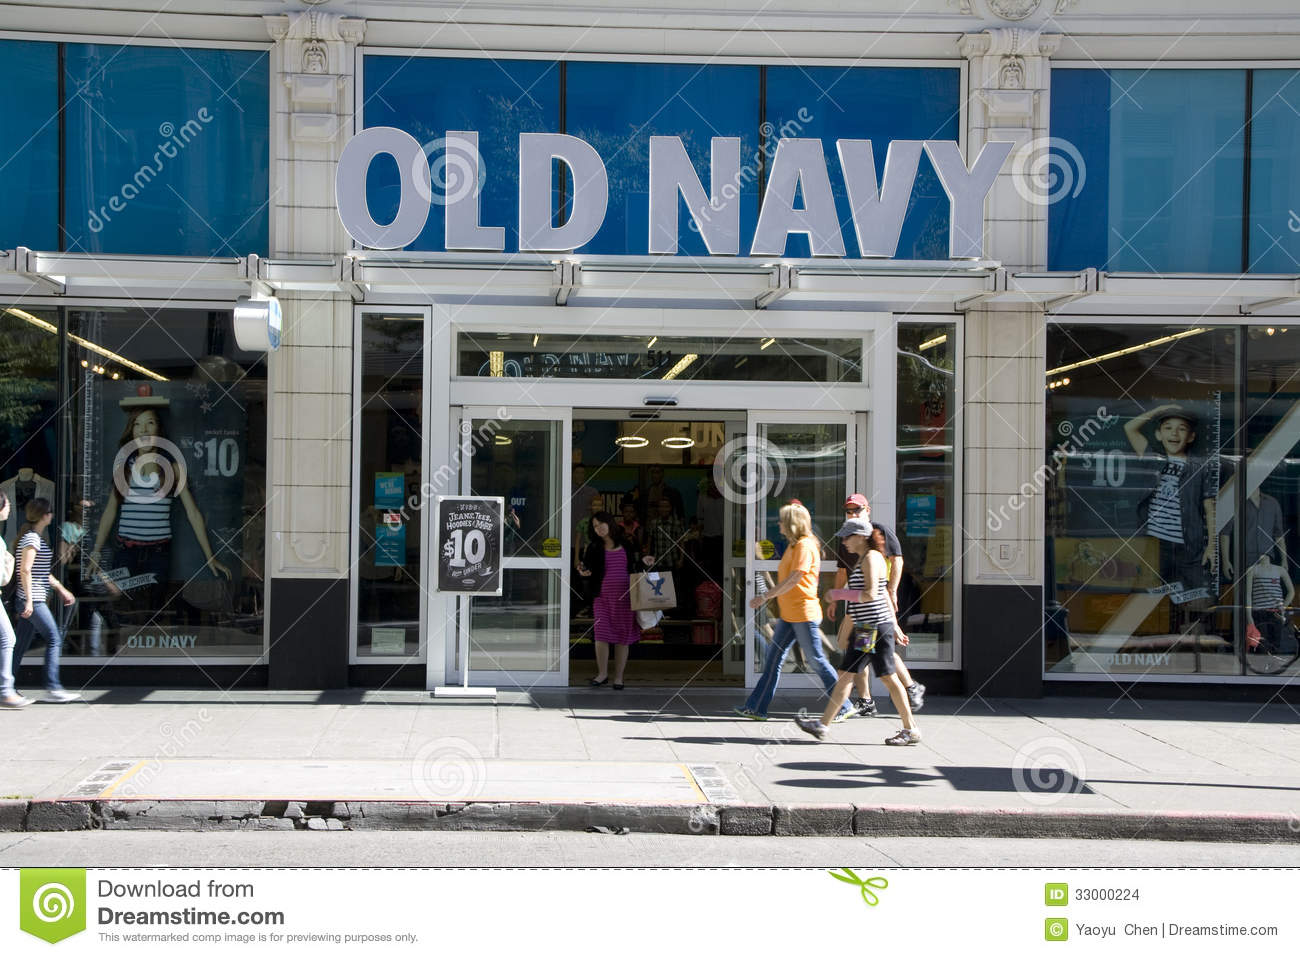 An Old Navy clothing store is seen in Springfield, Virginia, October 23, 2014. | SAUL LOEB via Getty Images